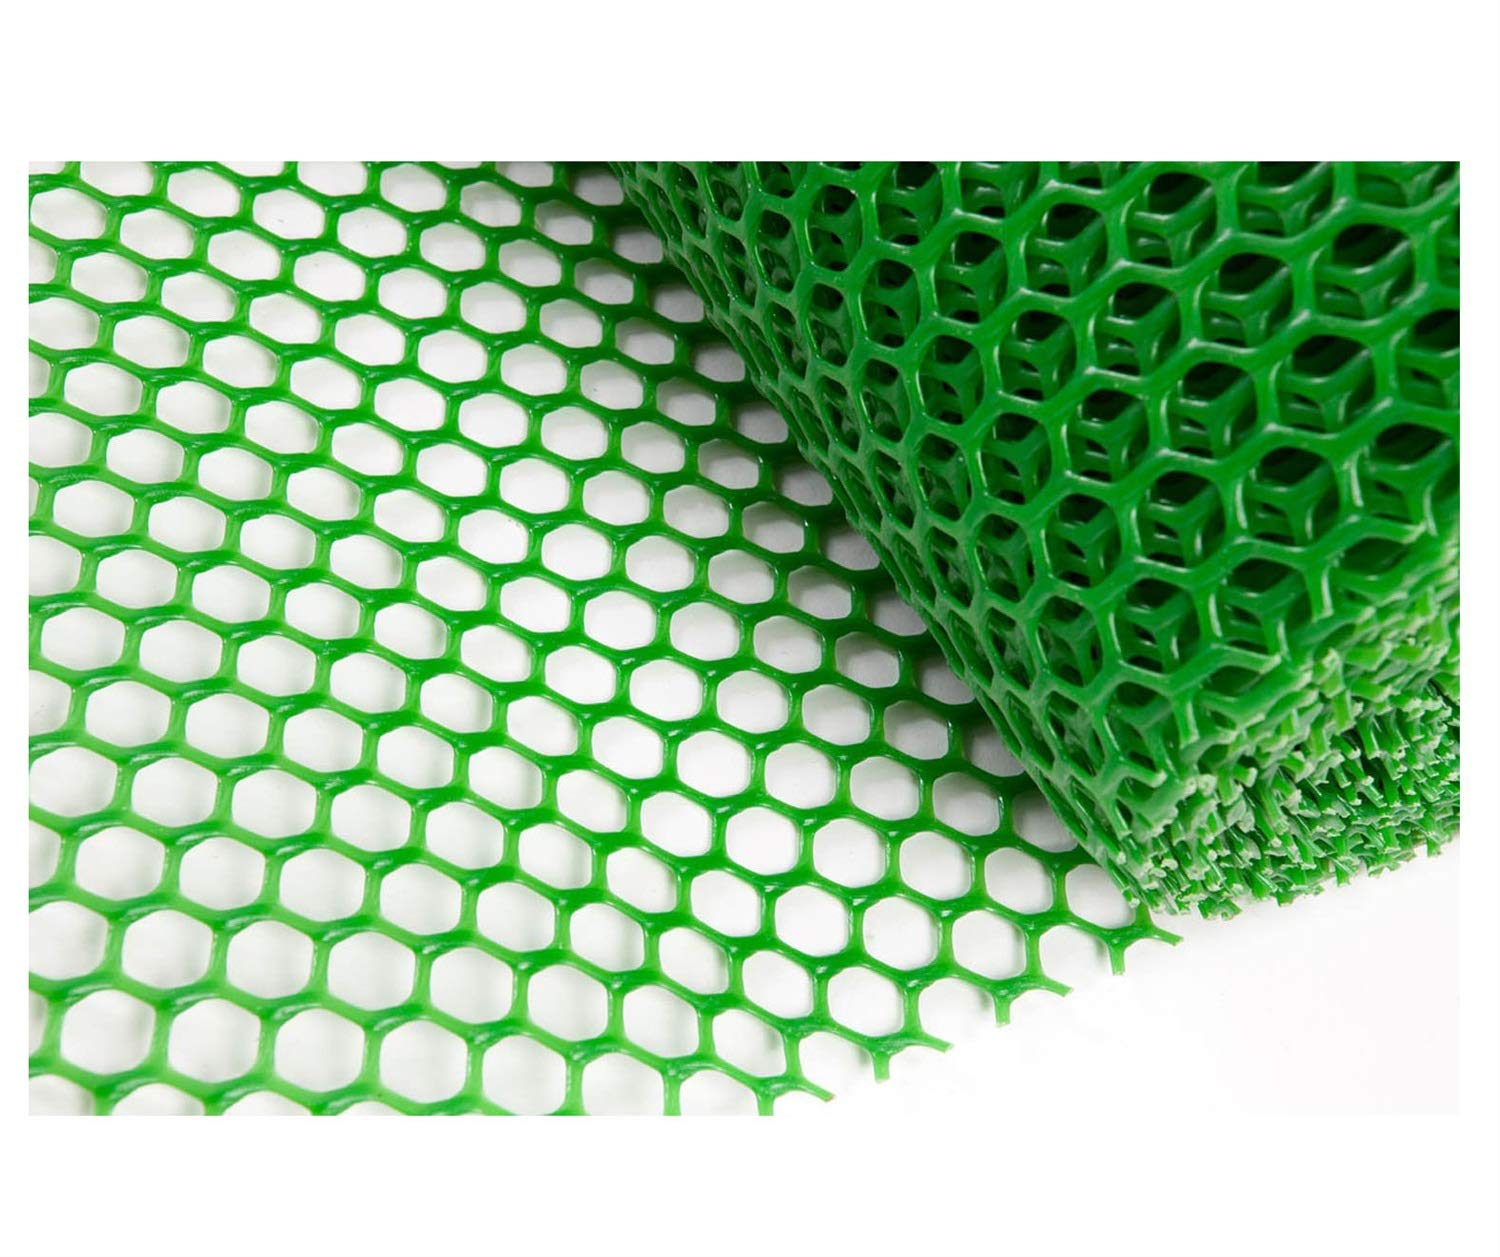 Grass Protection Mesh for Lawn or Car Park Reinforcement Green Plastic Child Safety Net Balcony Protection Net Stairs Anti-fall Net 10m 20m 30m 50m (Size : 2 * 50m) NNFHW ♦ Plastic safety mesh with a diameter of 1.8cm prevents children's head and body from falling through the railing and prevents toys and shoes from falling from the gap between the armrests. It can even be used as a pet safety door. Provide a safe gaming environment for children. ♦ Lawn protective grilles are used to reinforce large areas of flat surfaces, especially parks and lawn areas, slopes and embankments. The turf grid increases the load-bearing capacity of the soil. Effectively prevents the formation of ruts. Suitable for short-term parking, driveways, etc. ♦ Plastic flat net waterproof, wear-resistant, tough, light weight, long service life, non-toxic and tasteless, high transparency. Ideal for interior and exterior of residential buildings such as railings, stairs, cots, hallways, balconies, etc. The honeycomb design does not interfere with your view. 2